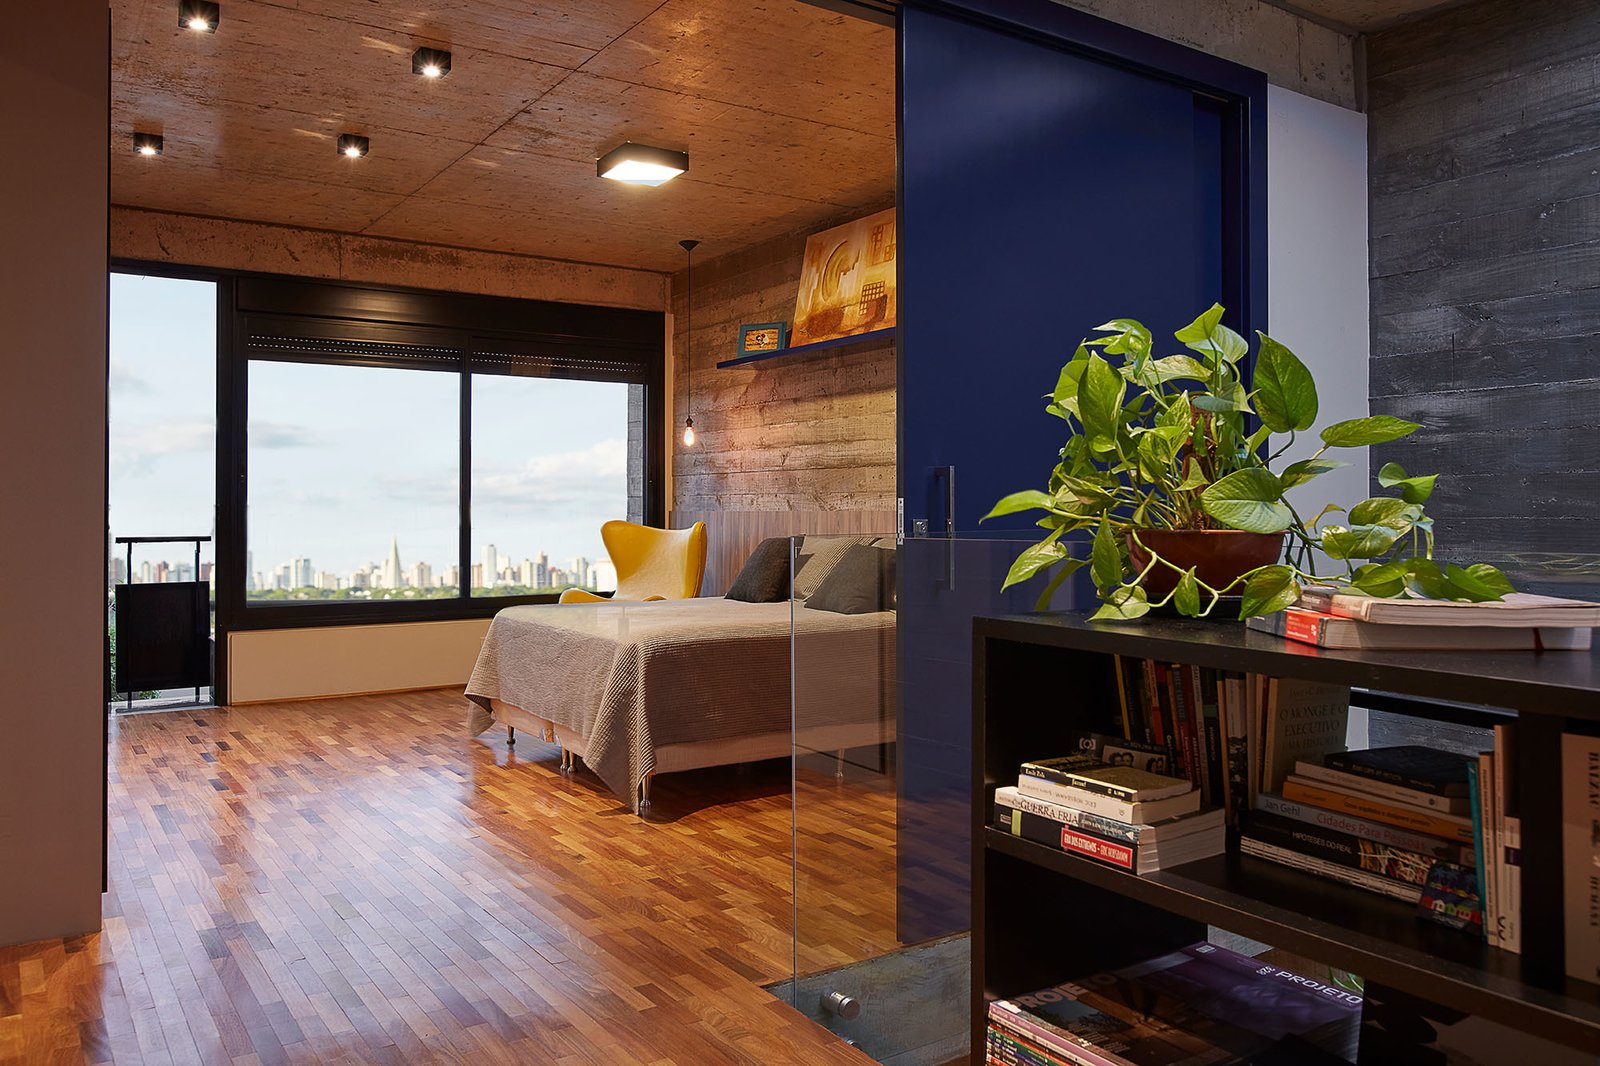 Bedroom, Bookcase, Medium Hardwood, Bed, Chair, Ceiling, and Pendant The master bedroom looks out to city views.  Best Bedroom Pendant Bookcase Photos from This Slender Concrete Home in Brazil Feels Like an Urban Jungle